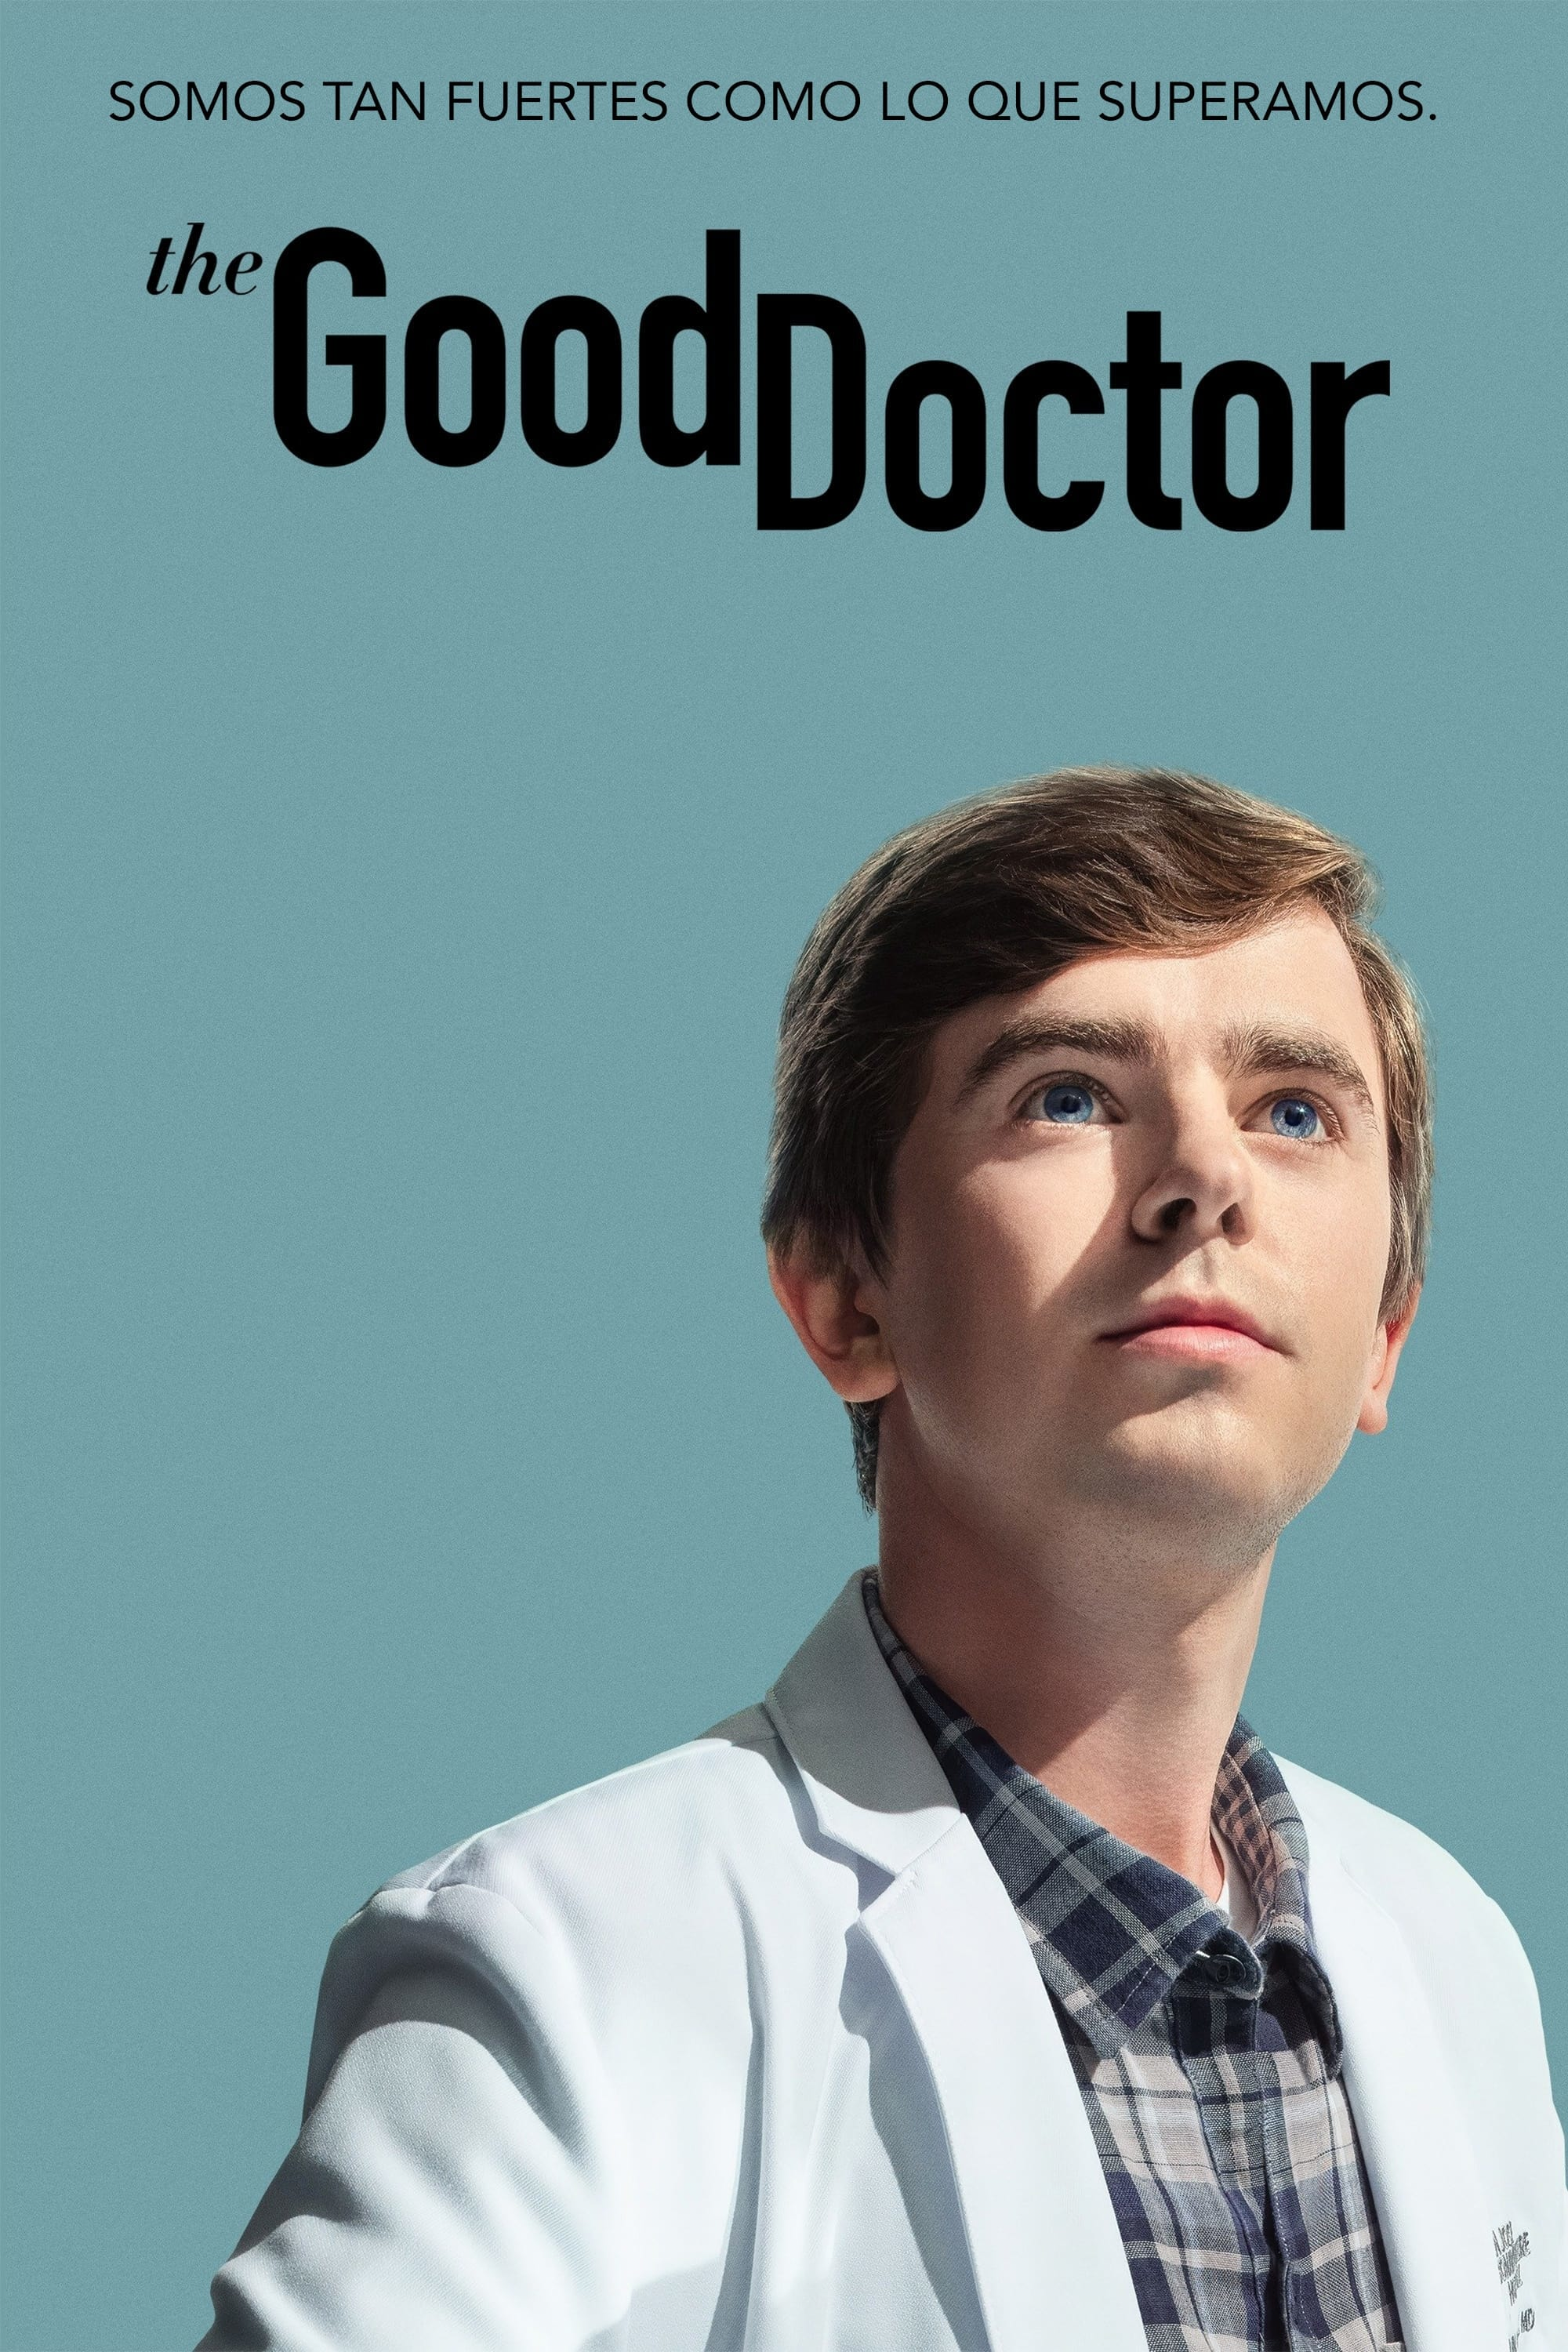 The Good Doctor' />